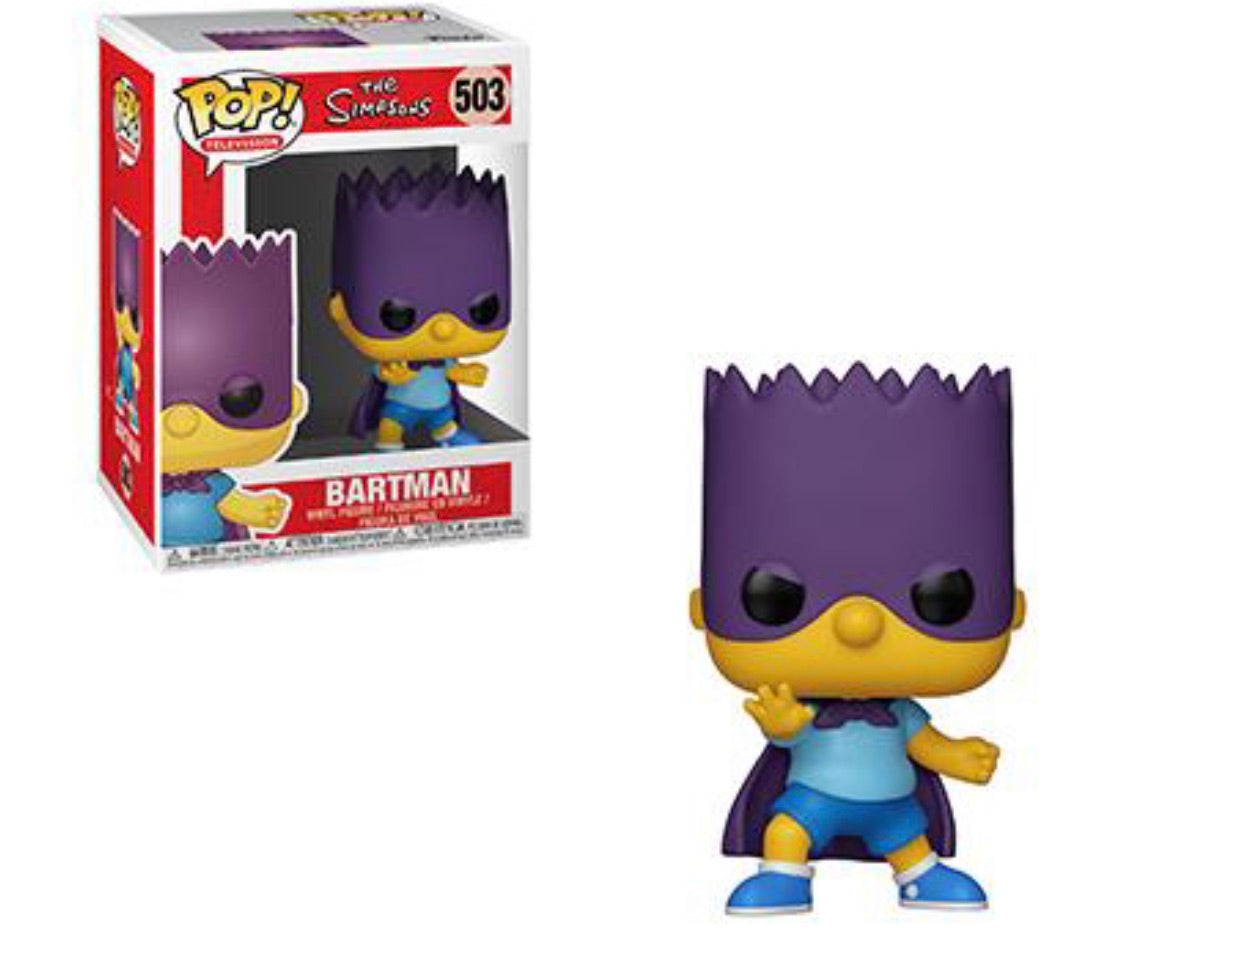 Pop! The Simpsons Bartman